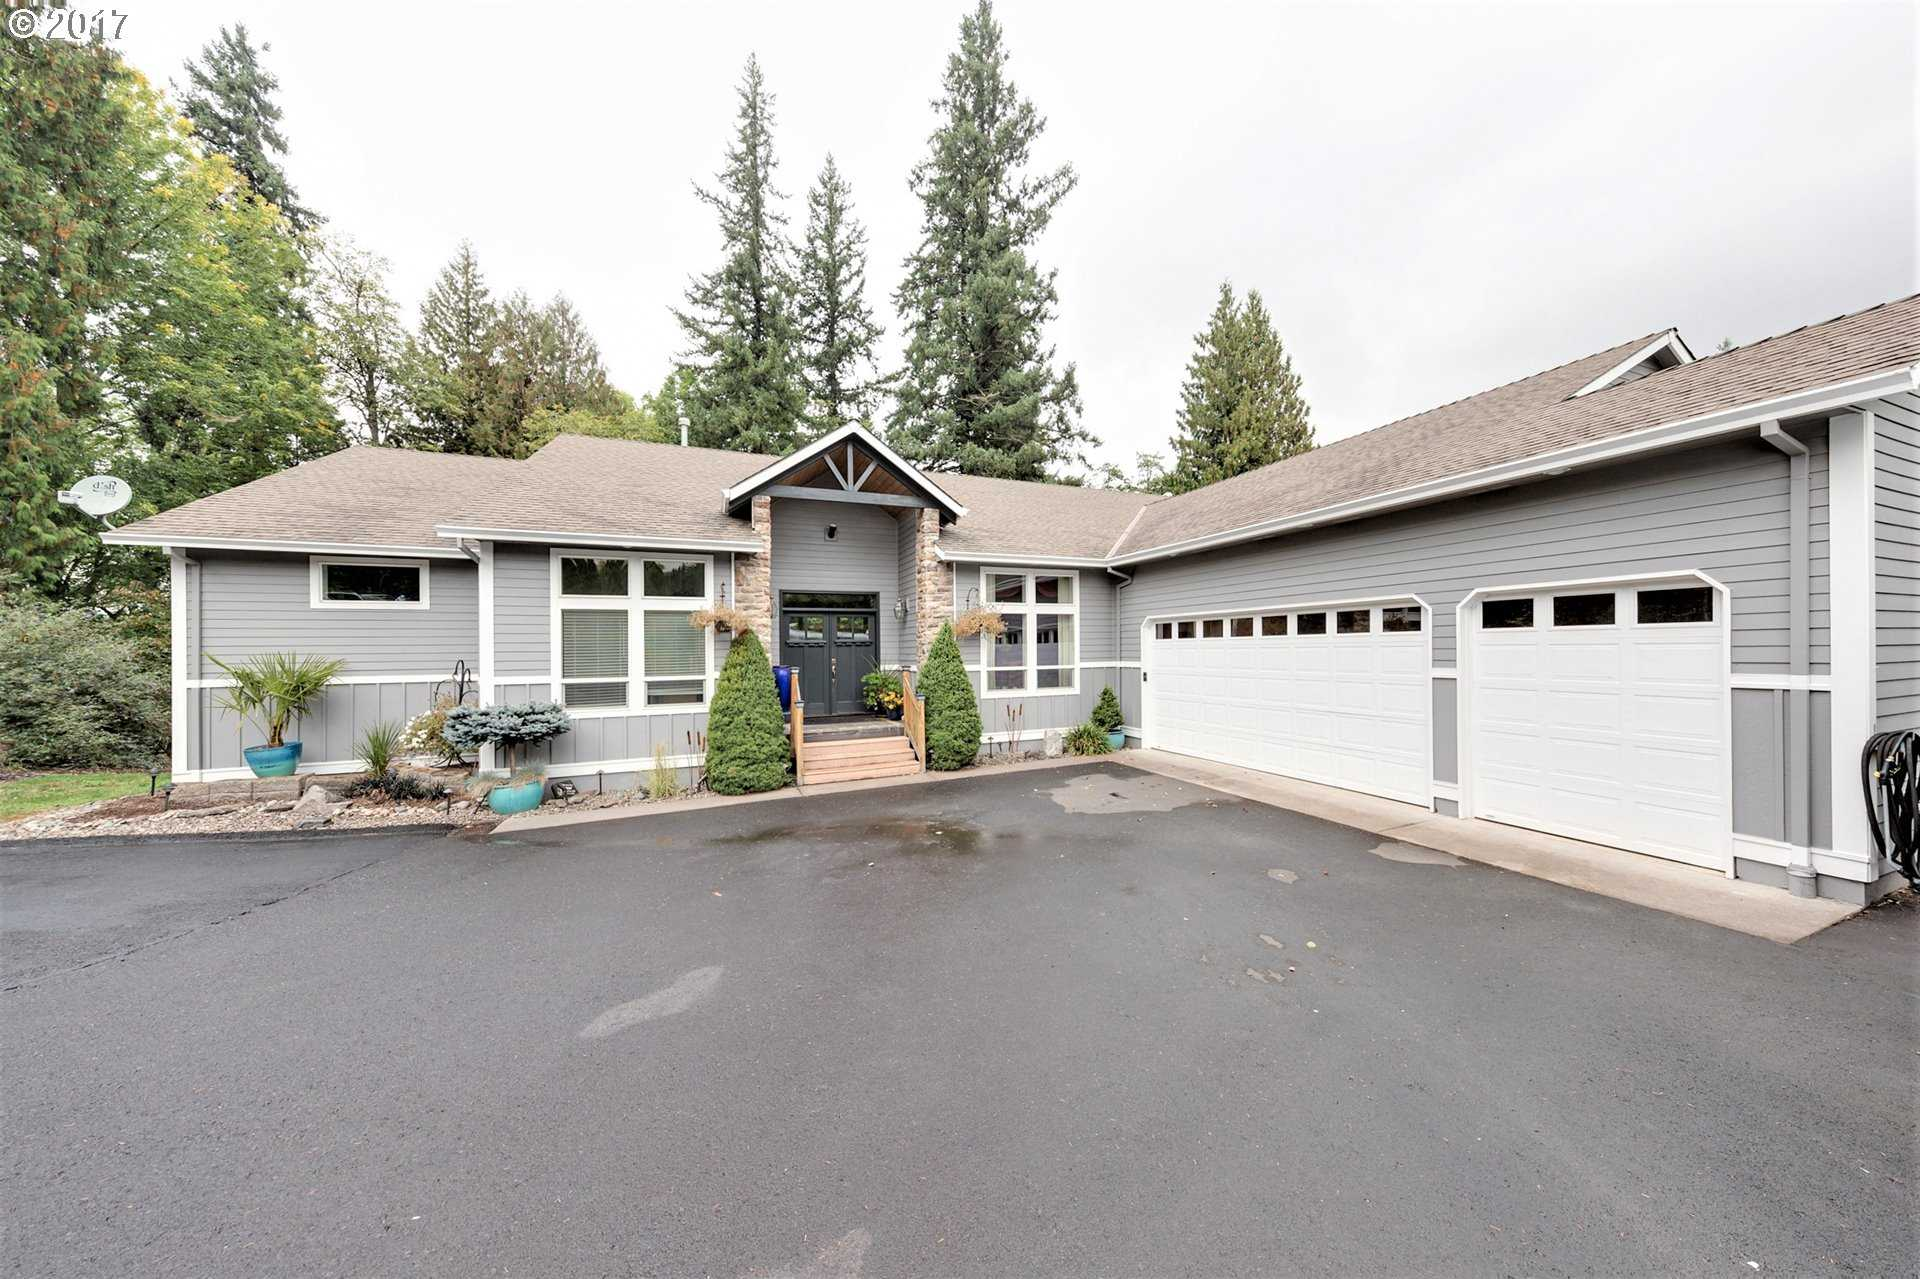 $699,950 - 4Br/4Ba -  for Sale in Boring